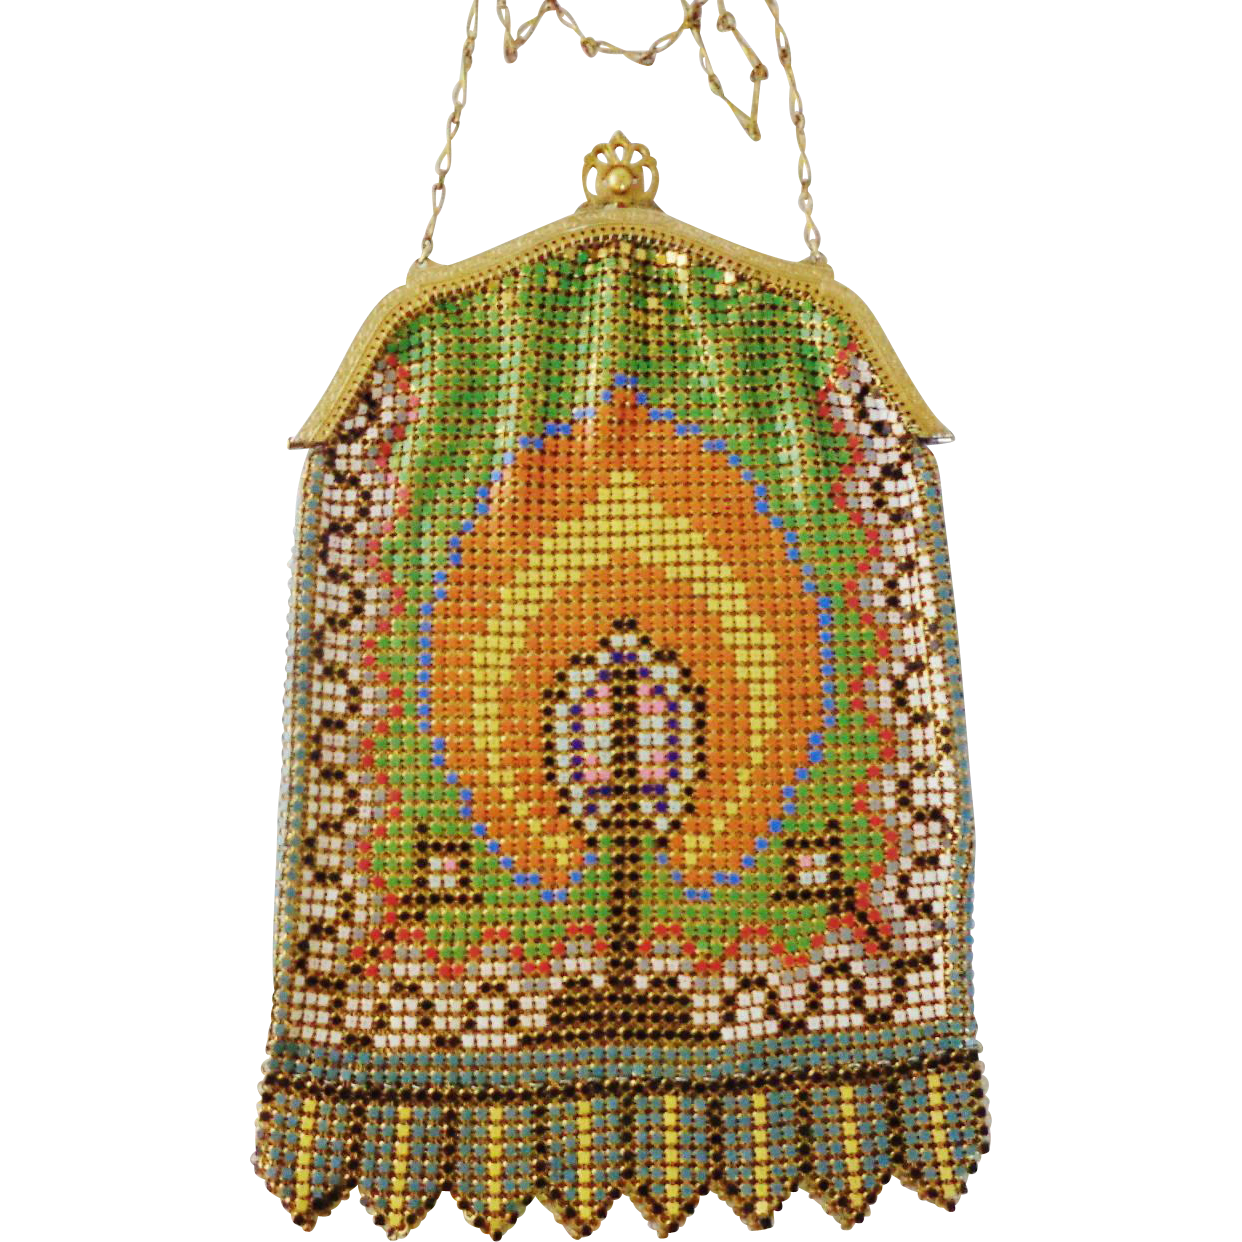 Vintage Enamel Mesh Candle Purse by Whiting and Davis